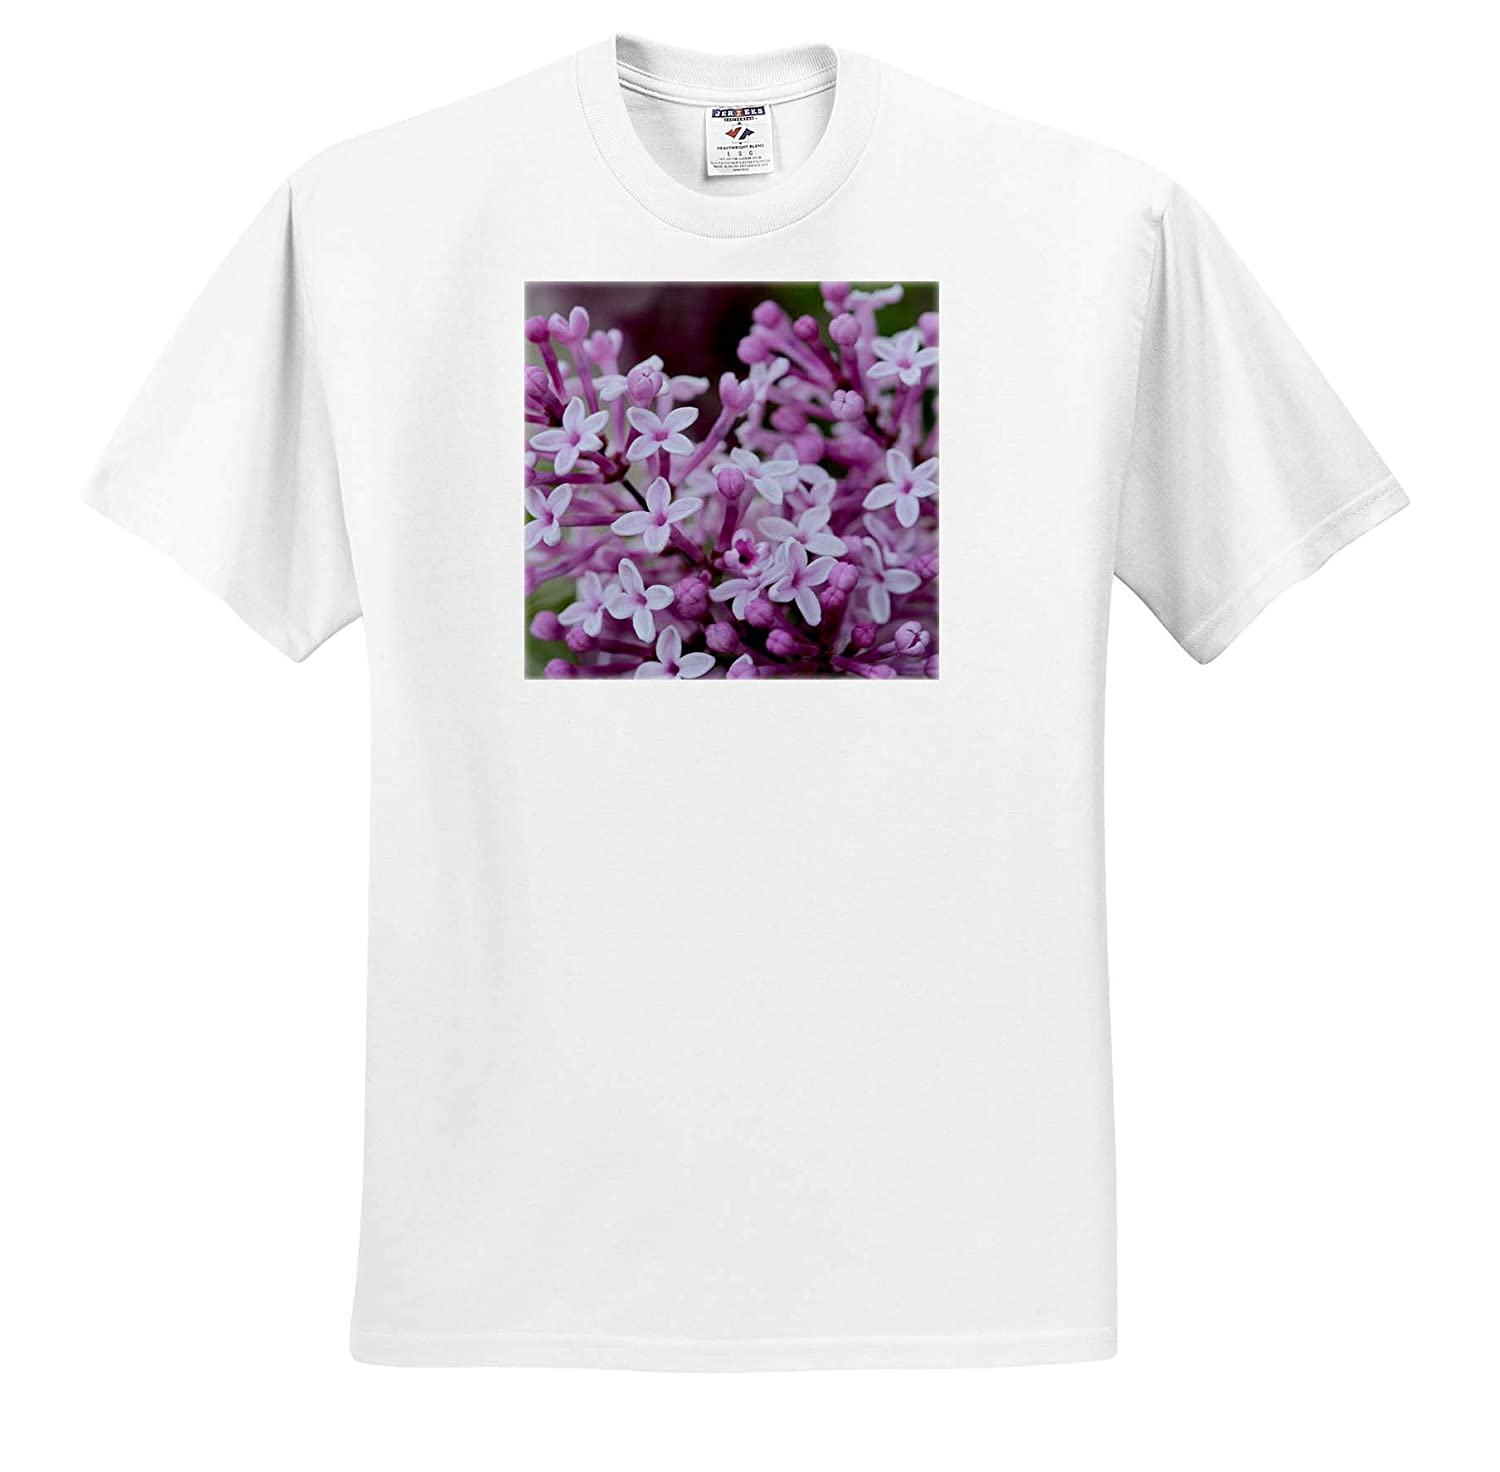 Flowers - Adult T-Shirt XL ts/_309935 3dRose Stamp City Macro Photograph of a Cluster of Pink Lilac Flowers